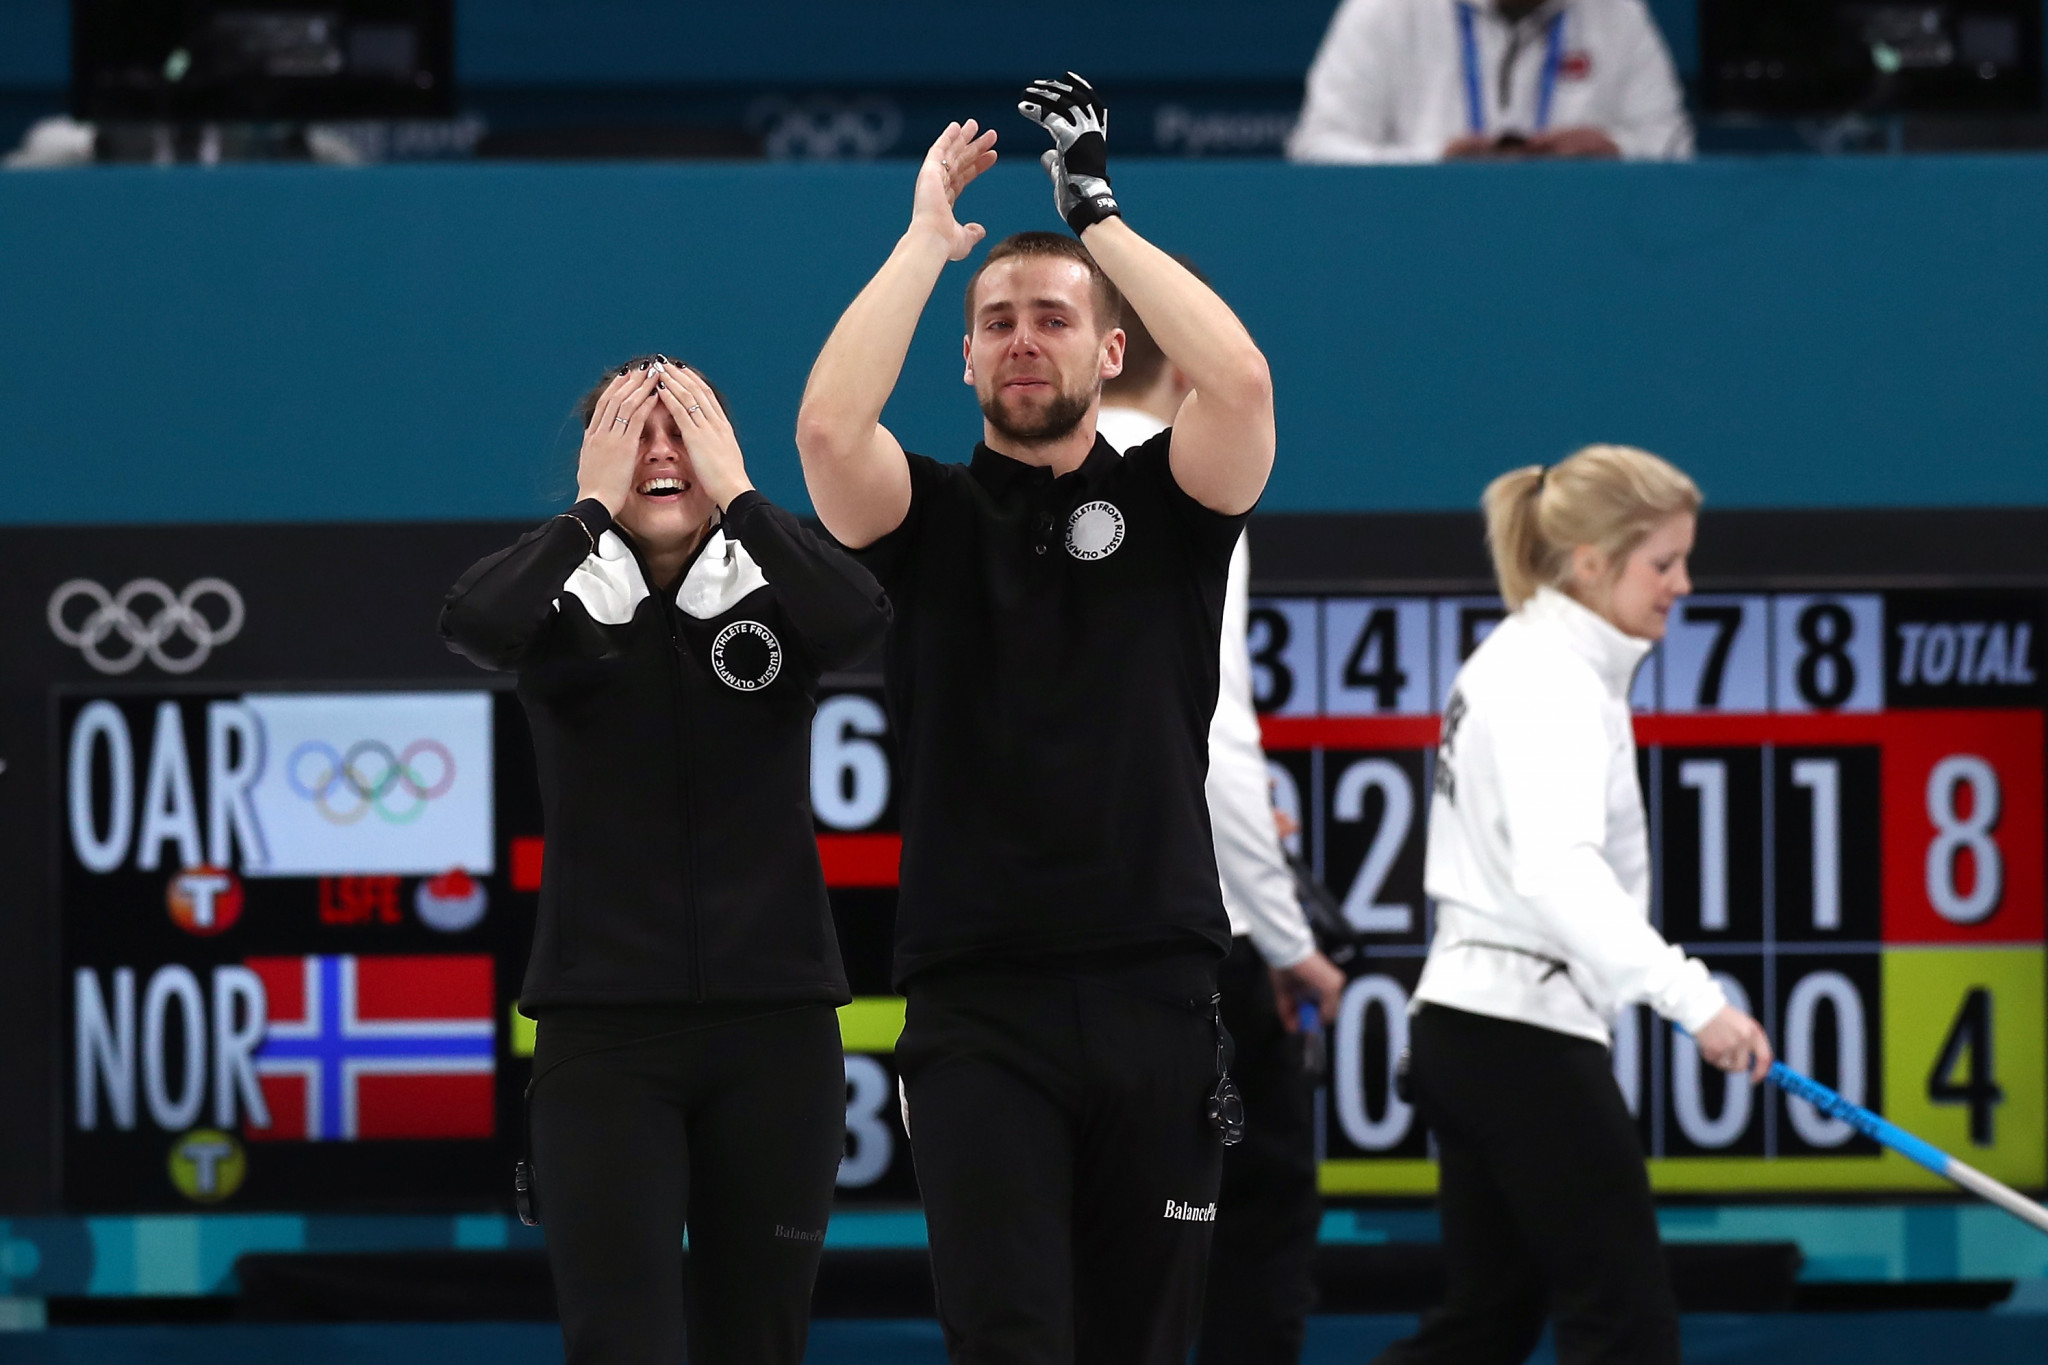 Aleksandr Krushelnitckii and wife Anastasia Bryzgalova were stripped of their Olympic mixed doubles curling bronze medals ©Getty Images